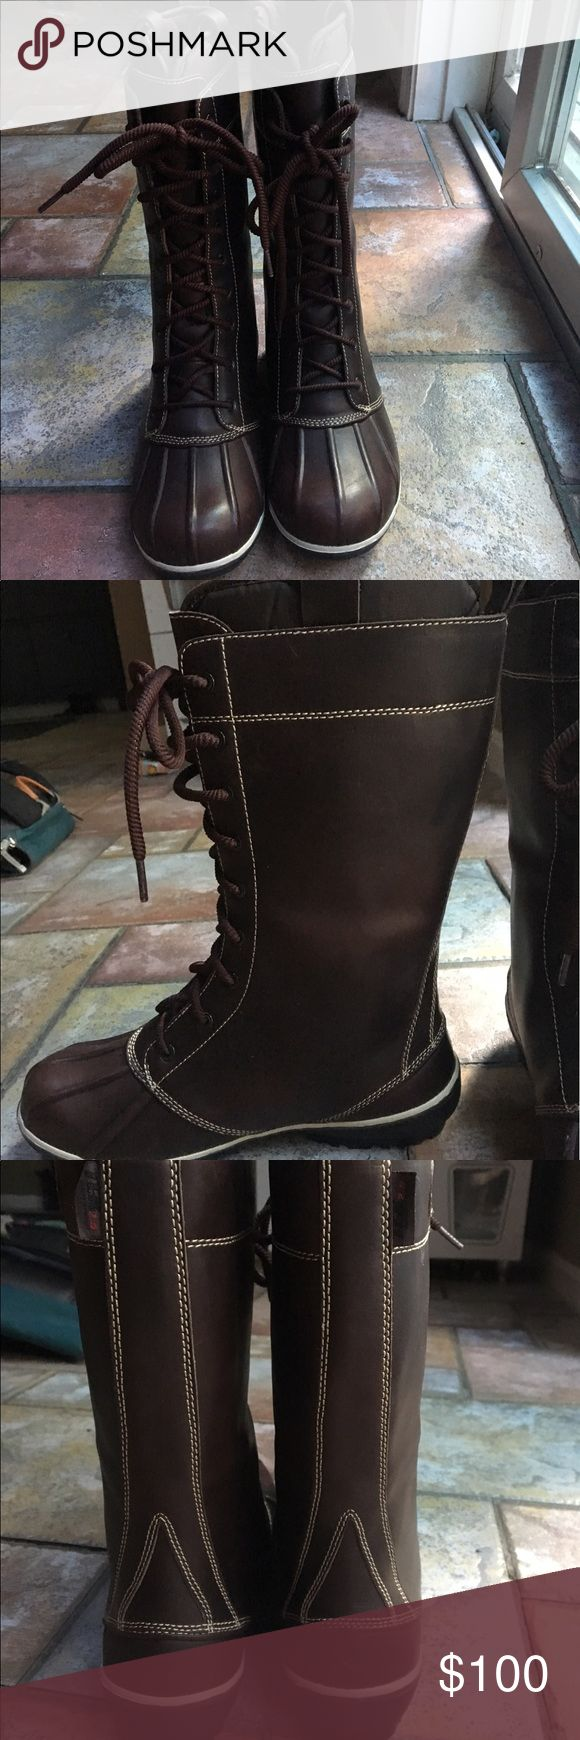 Tall brown LL bean boots Worn once! Super warm with liners. Dark brown, really cute. Will be marking with a small X so they cannot be returned for a full store credit. L.L. Bean Shoes Winter & Rain Boots